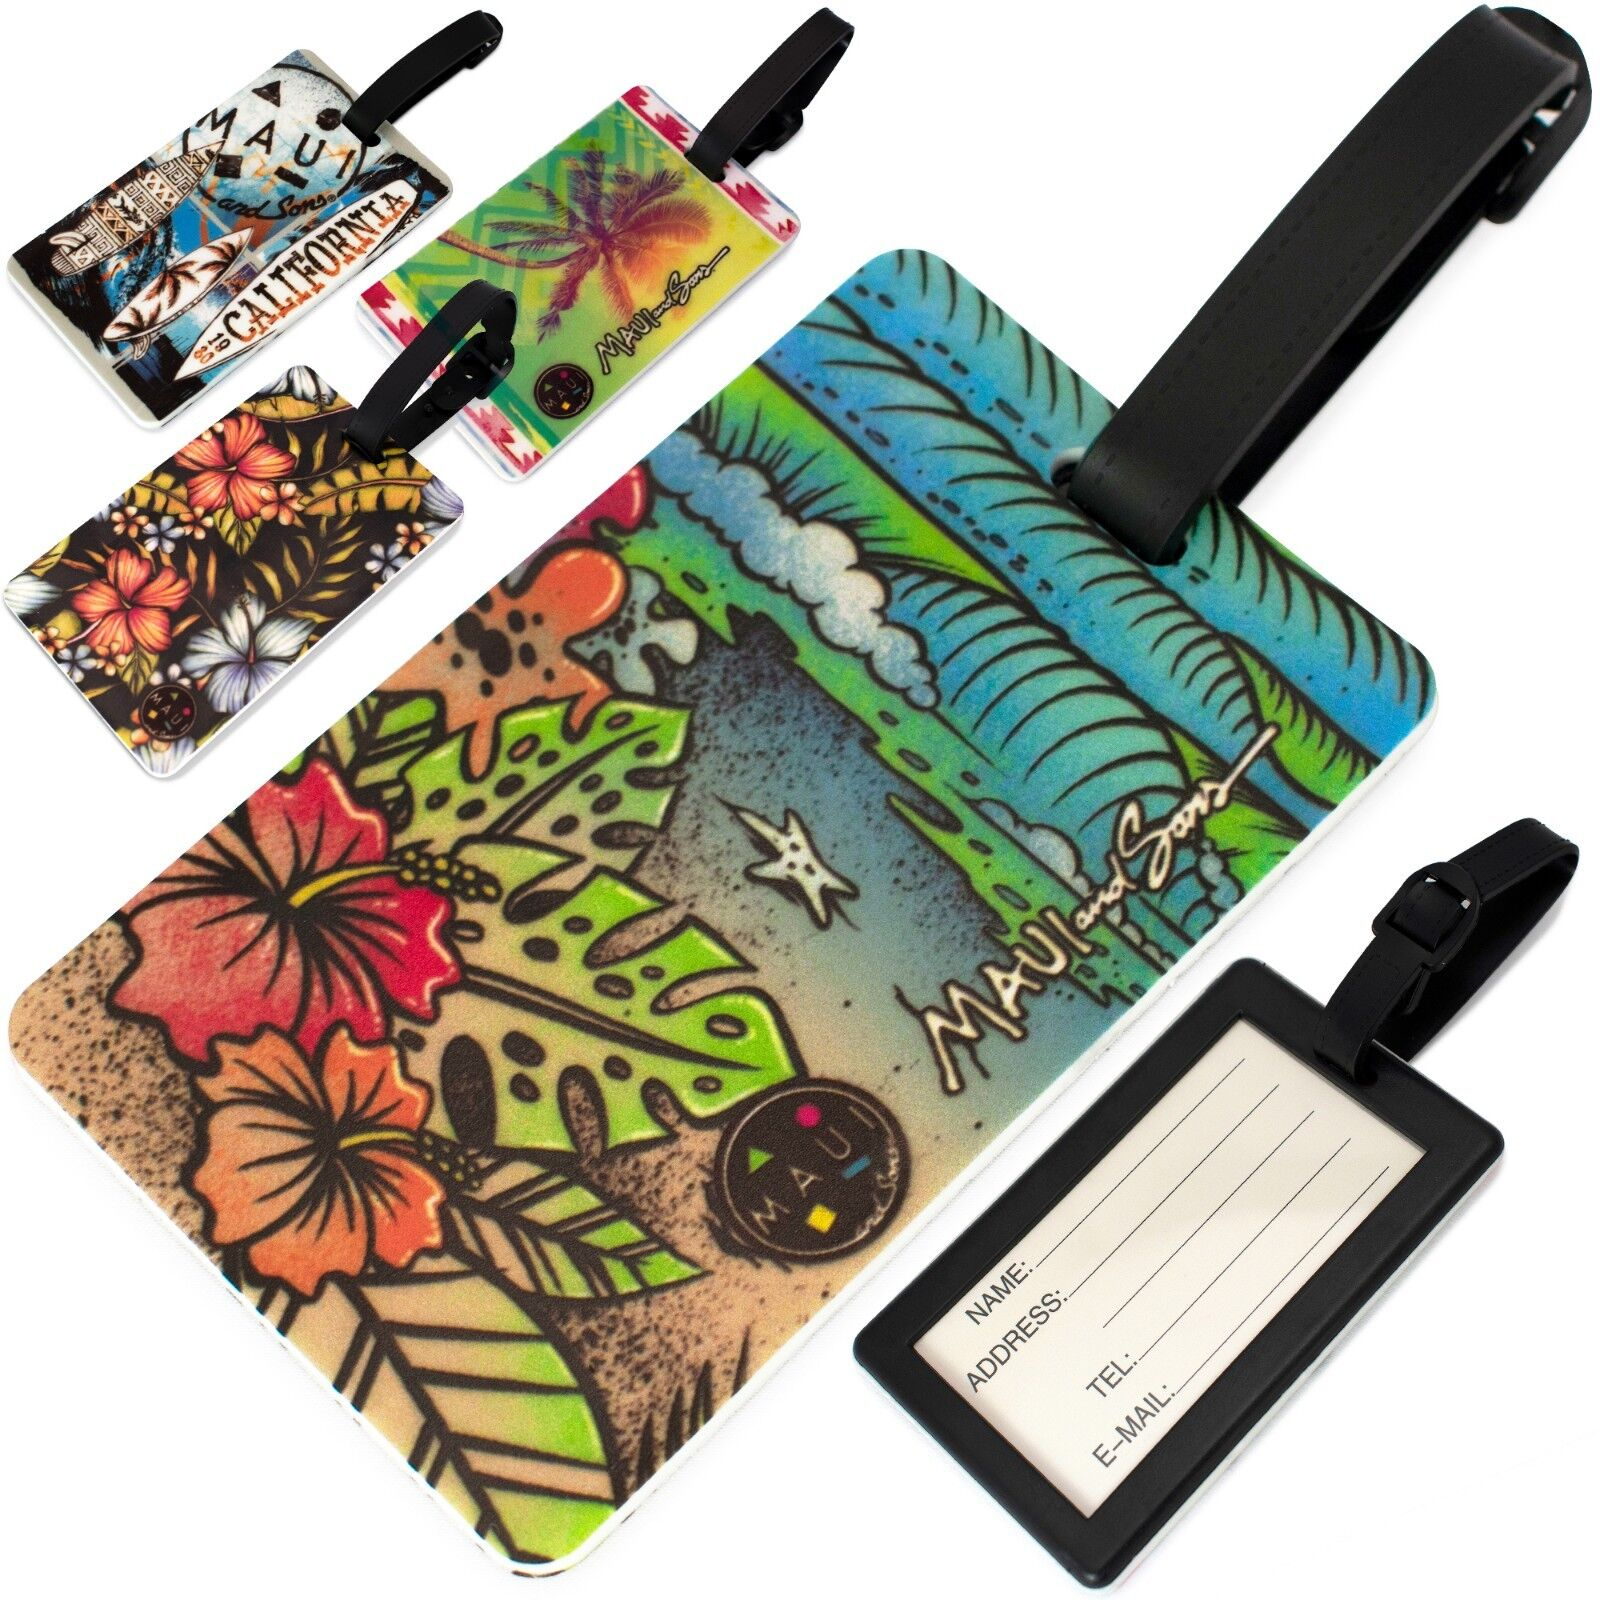 Maui and Sons Surfer Collection Luggage Tags - Pair